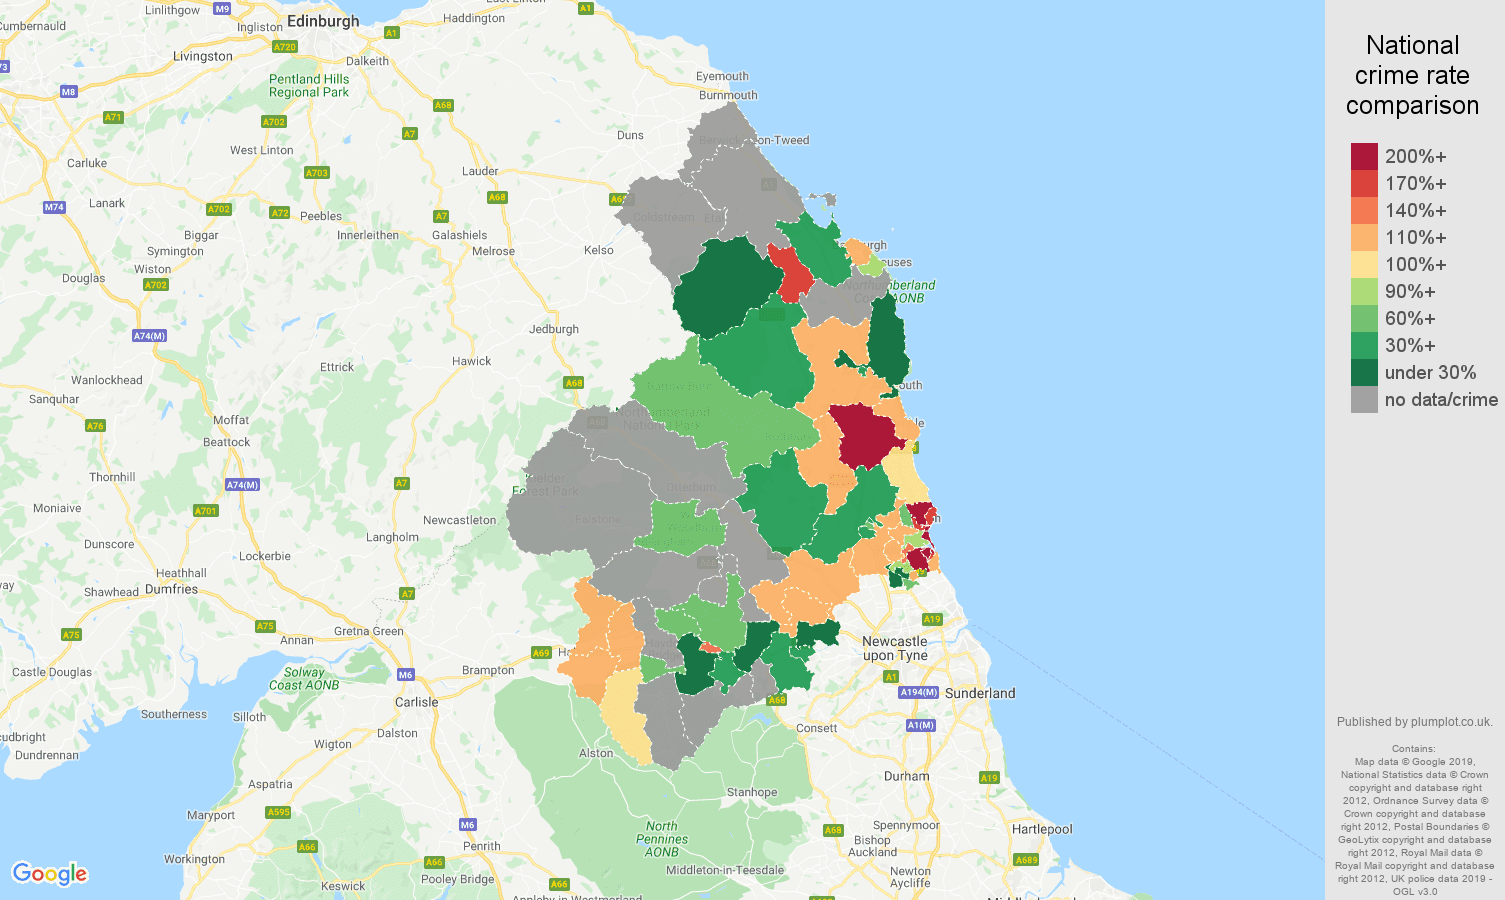 Northumberland other crime rate comparison map